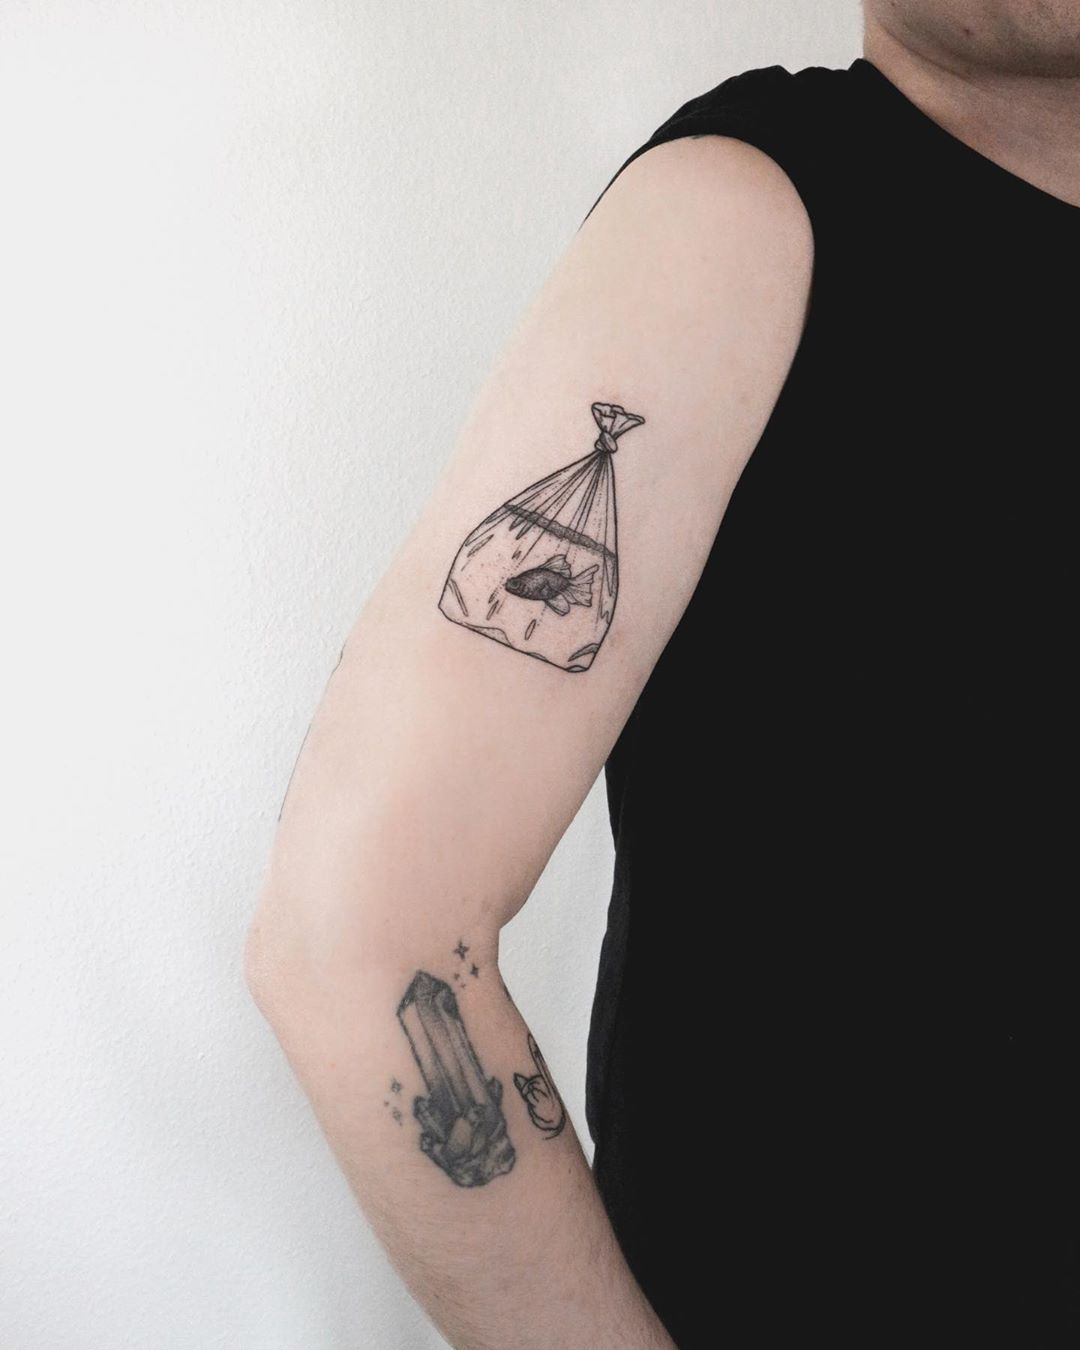 Transportable fish tattoo by Ann Gilberg